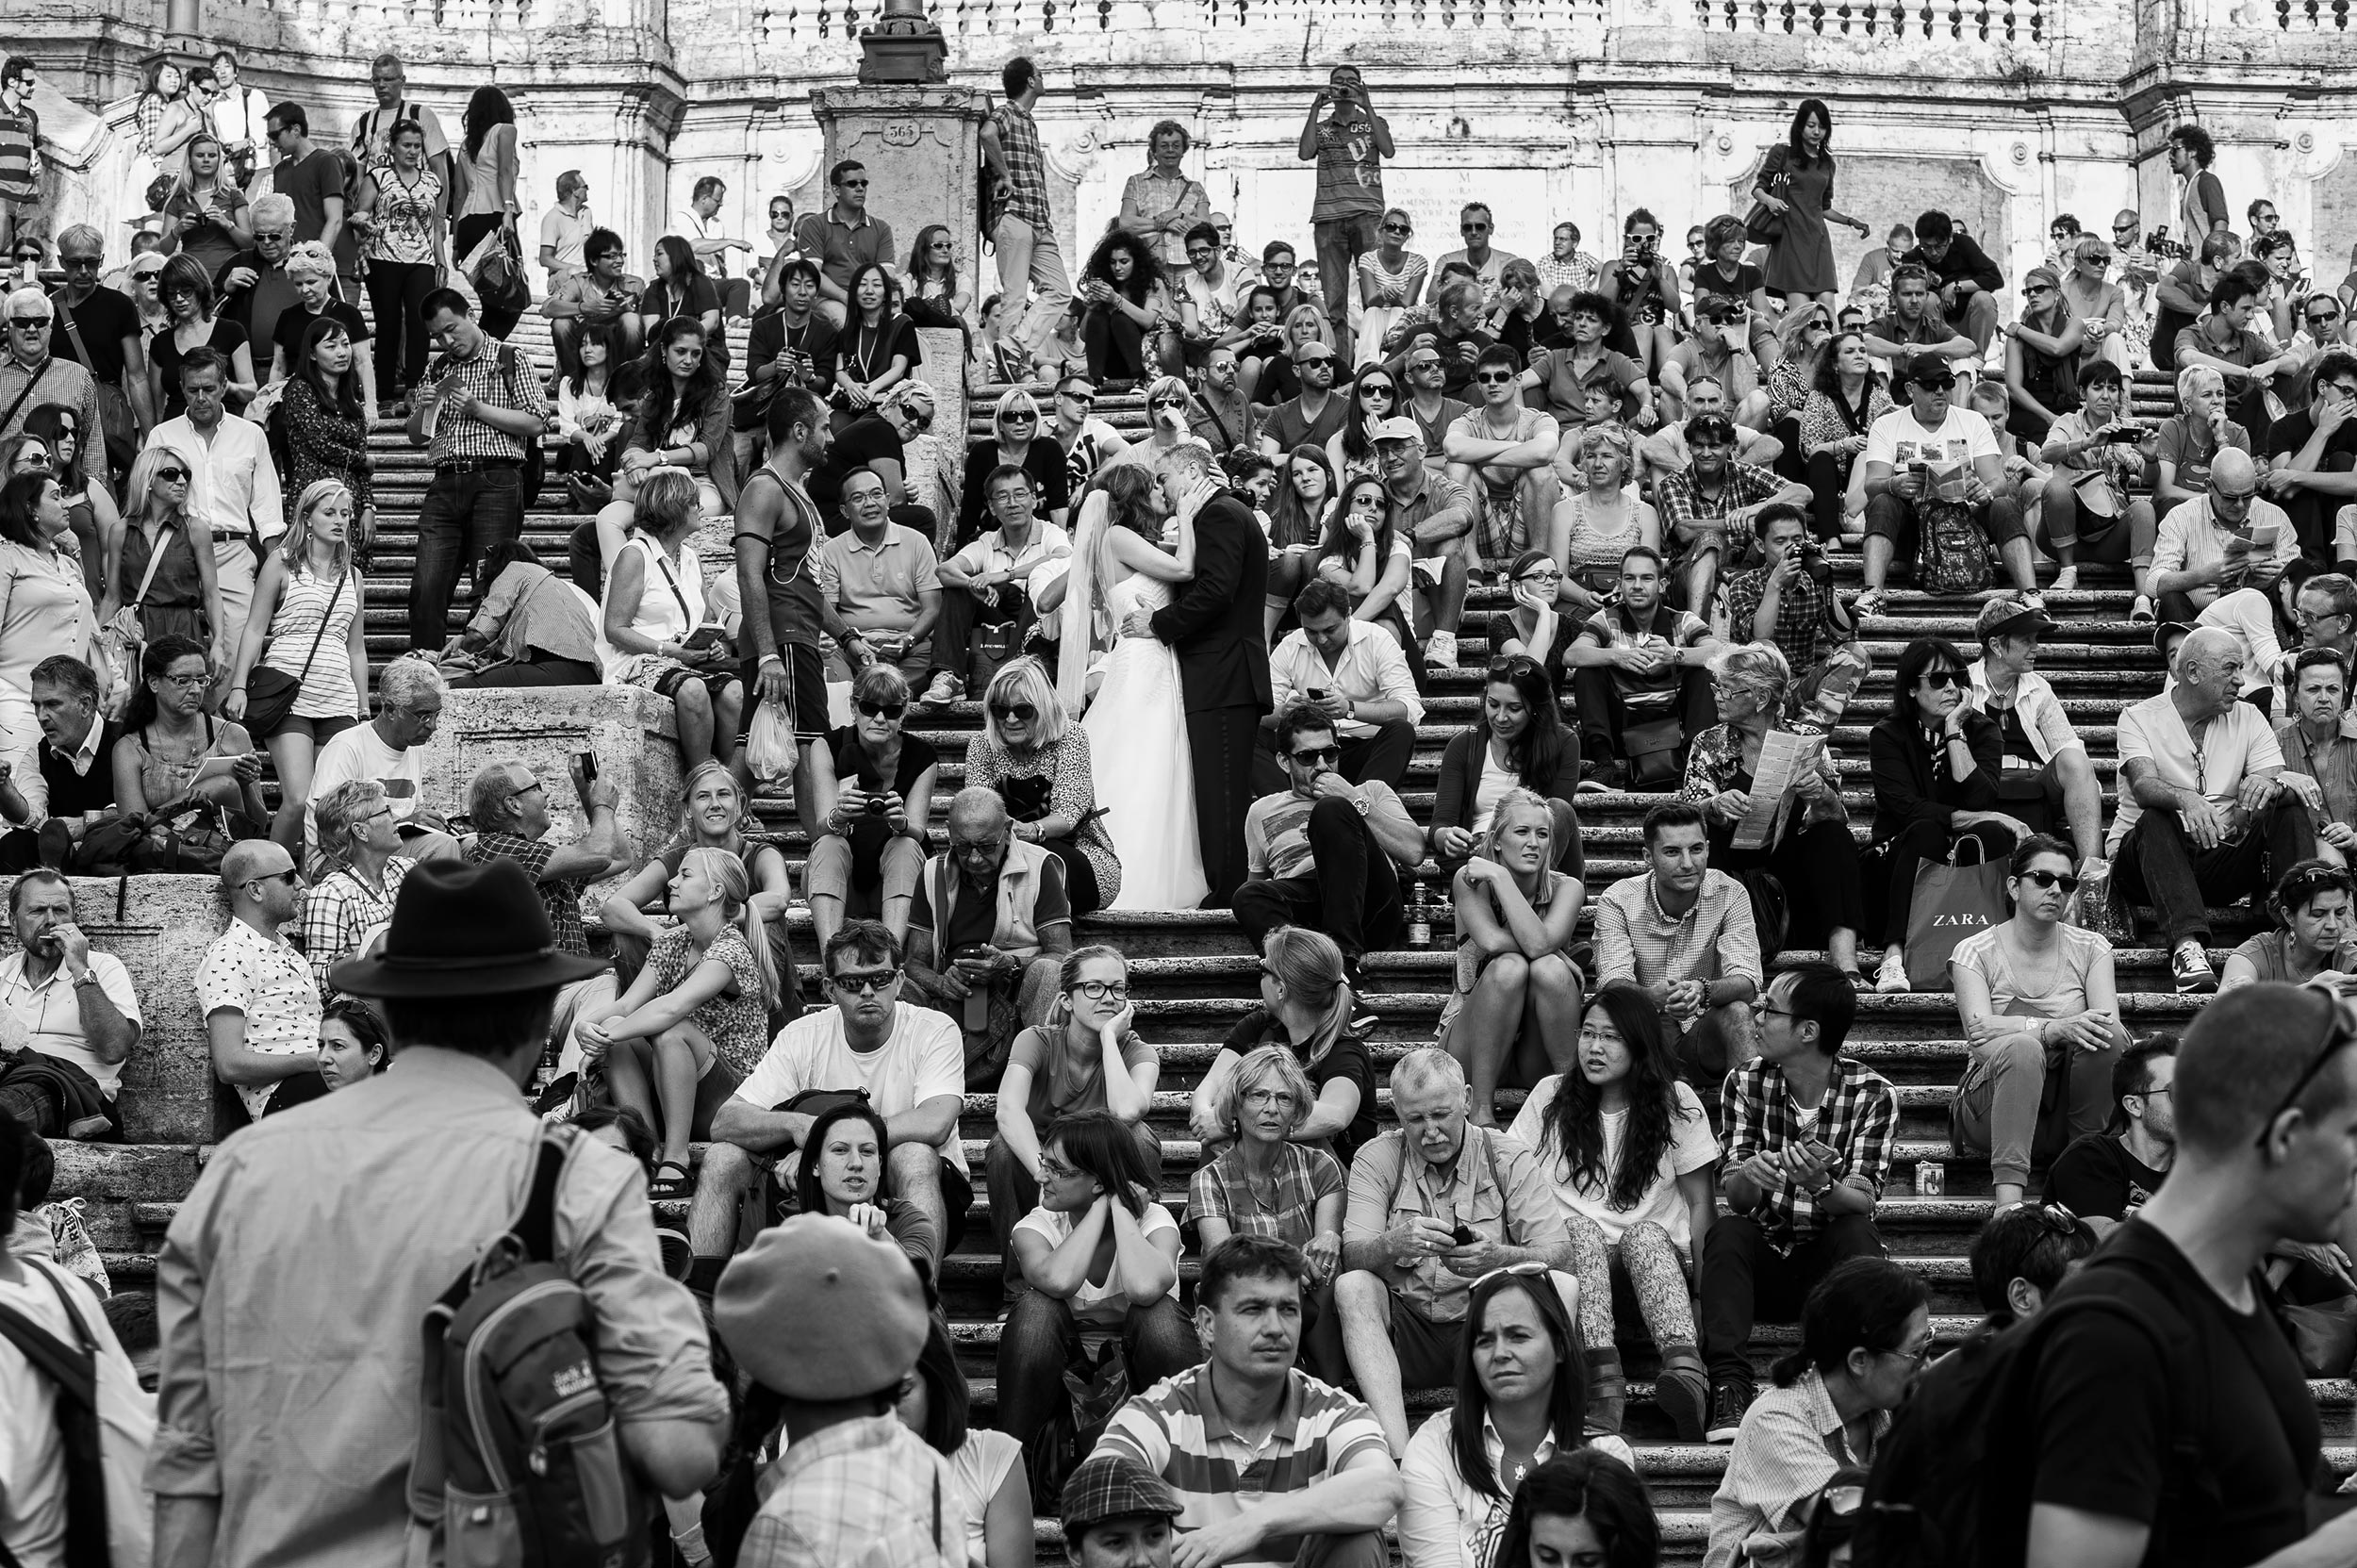 rome-spanish-steps-kiss-among-the-crowd-black-and-white-wedding-photography.jpg